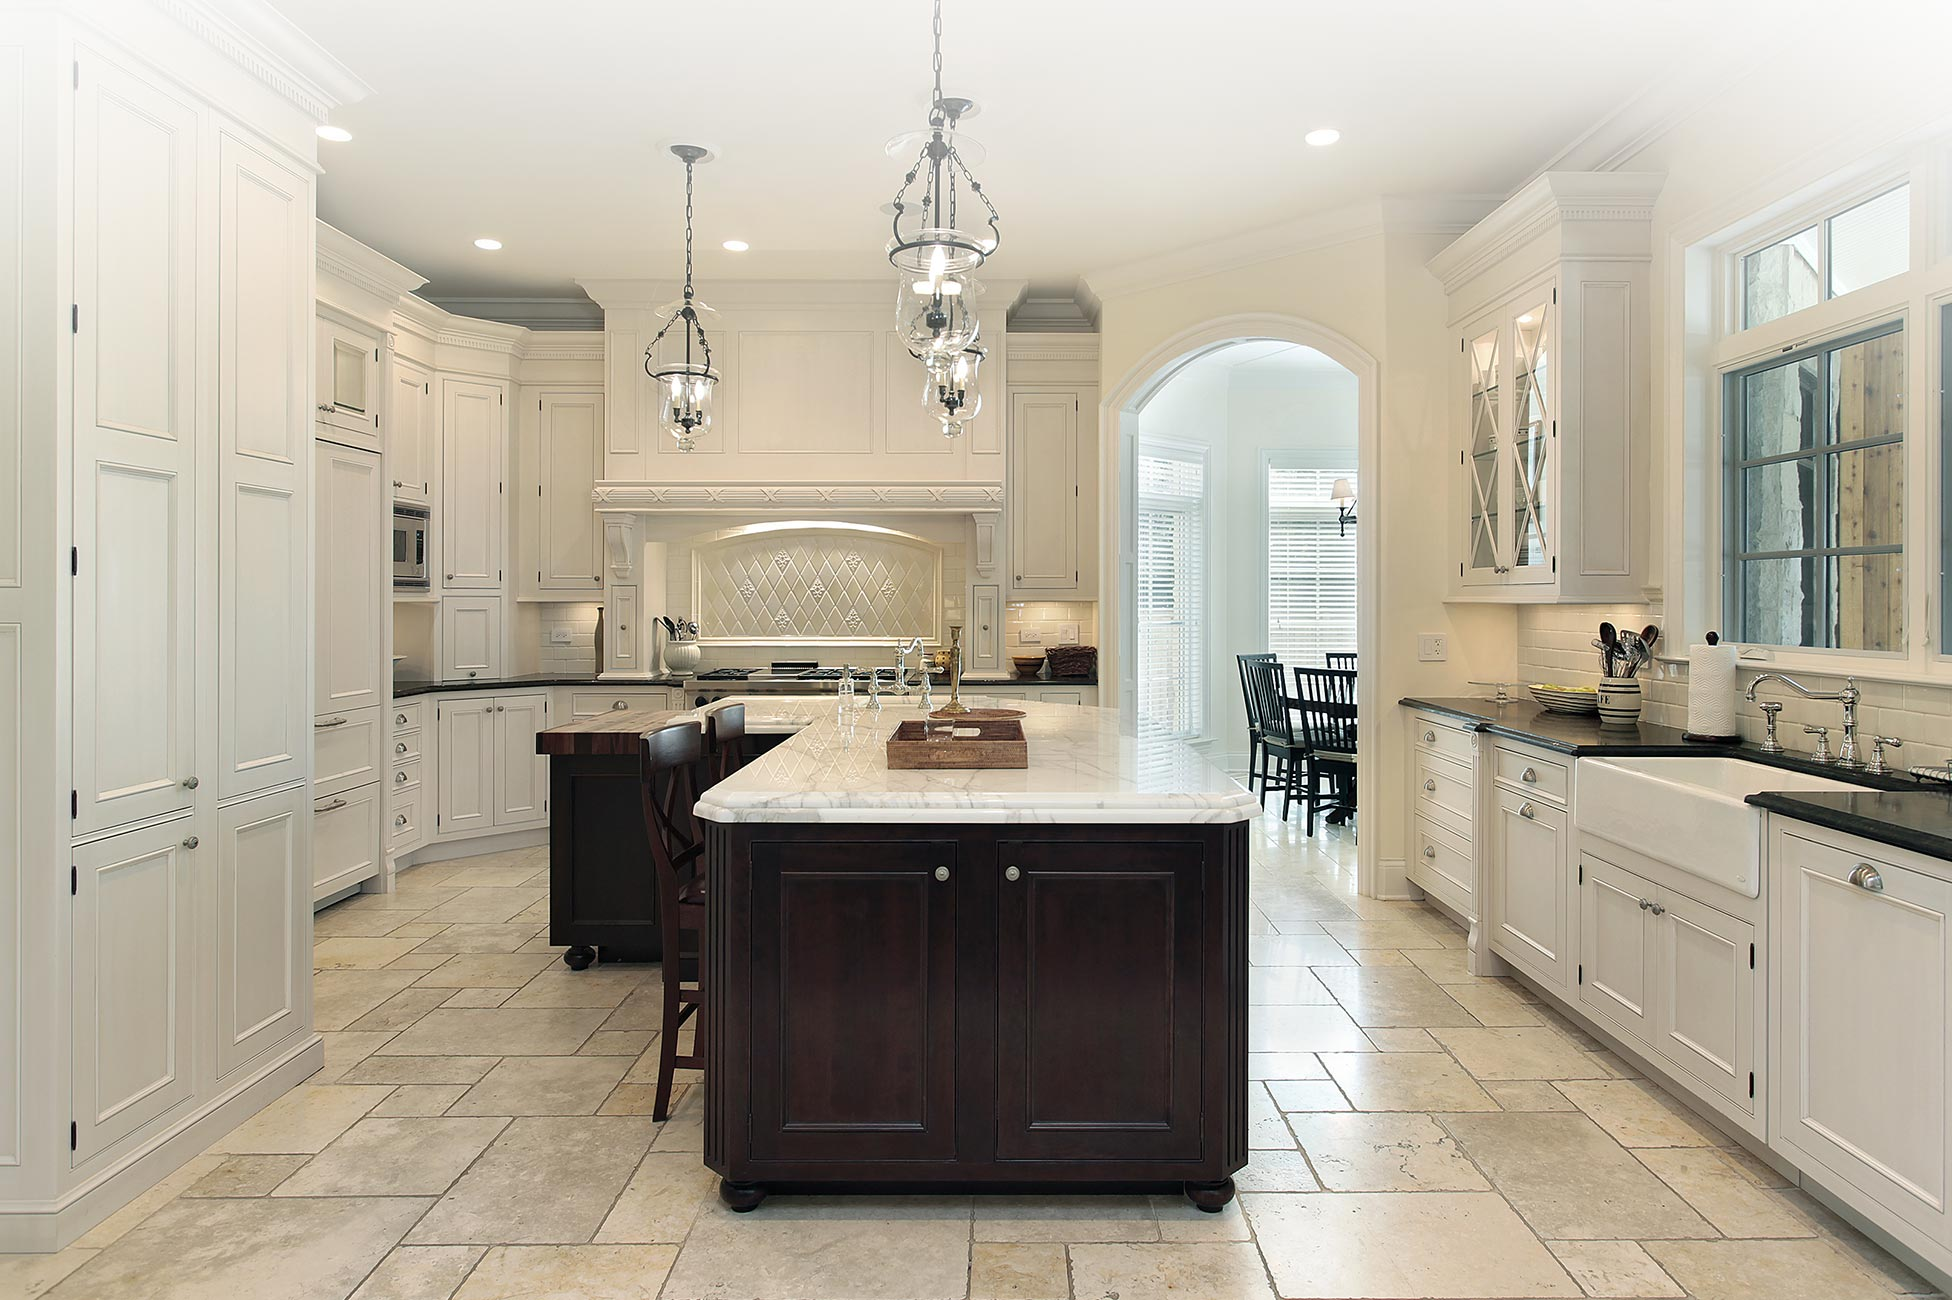 designer kitchen stools with back southbrook cabinetry high quality kitchens an elegant functionality